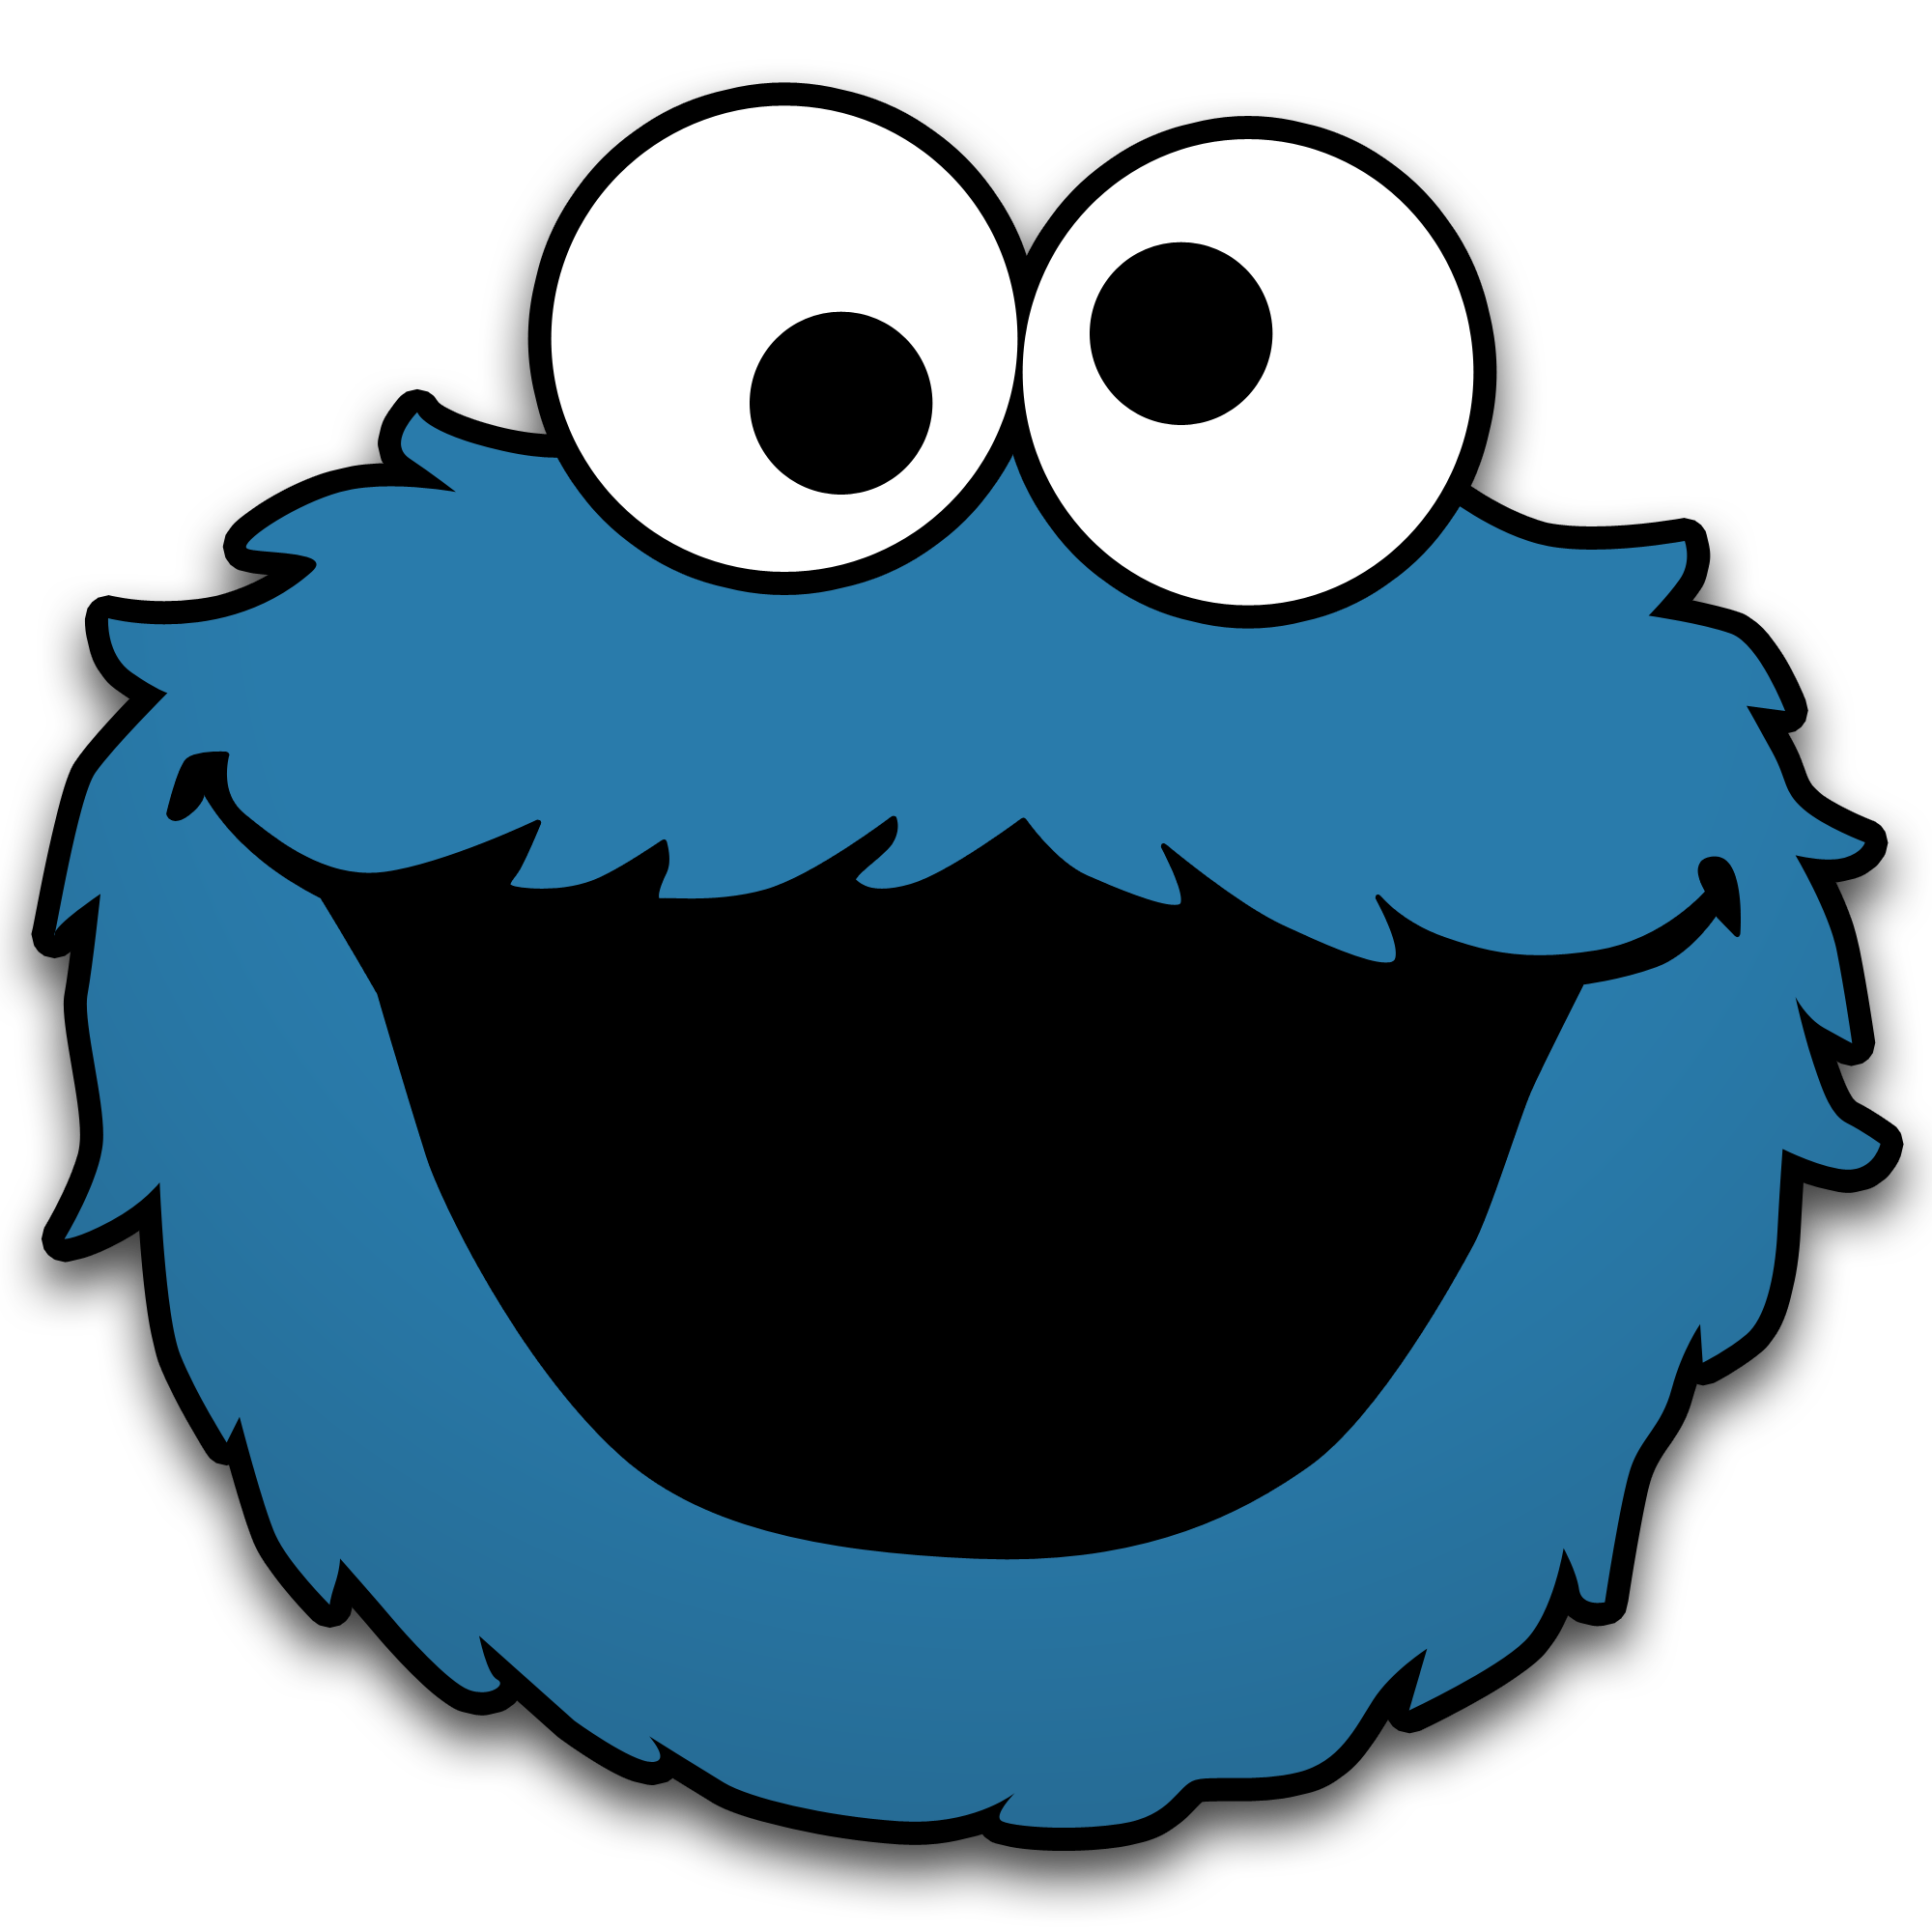 2000x2000 Cookie Monster By Neorame D4yb0b5 Birthday Ideas